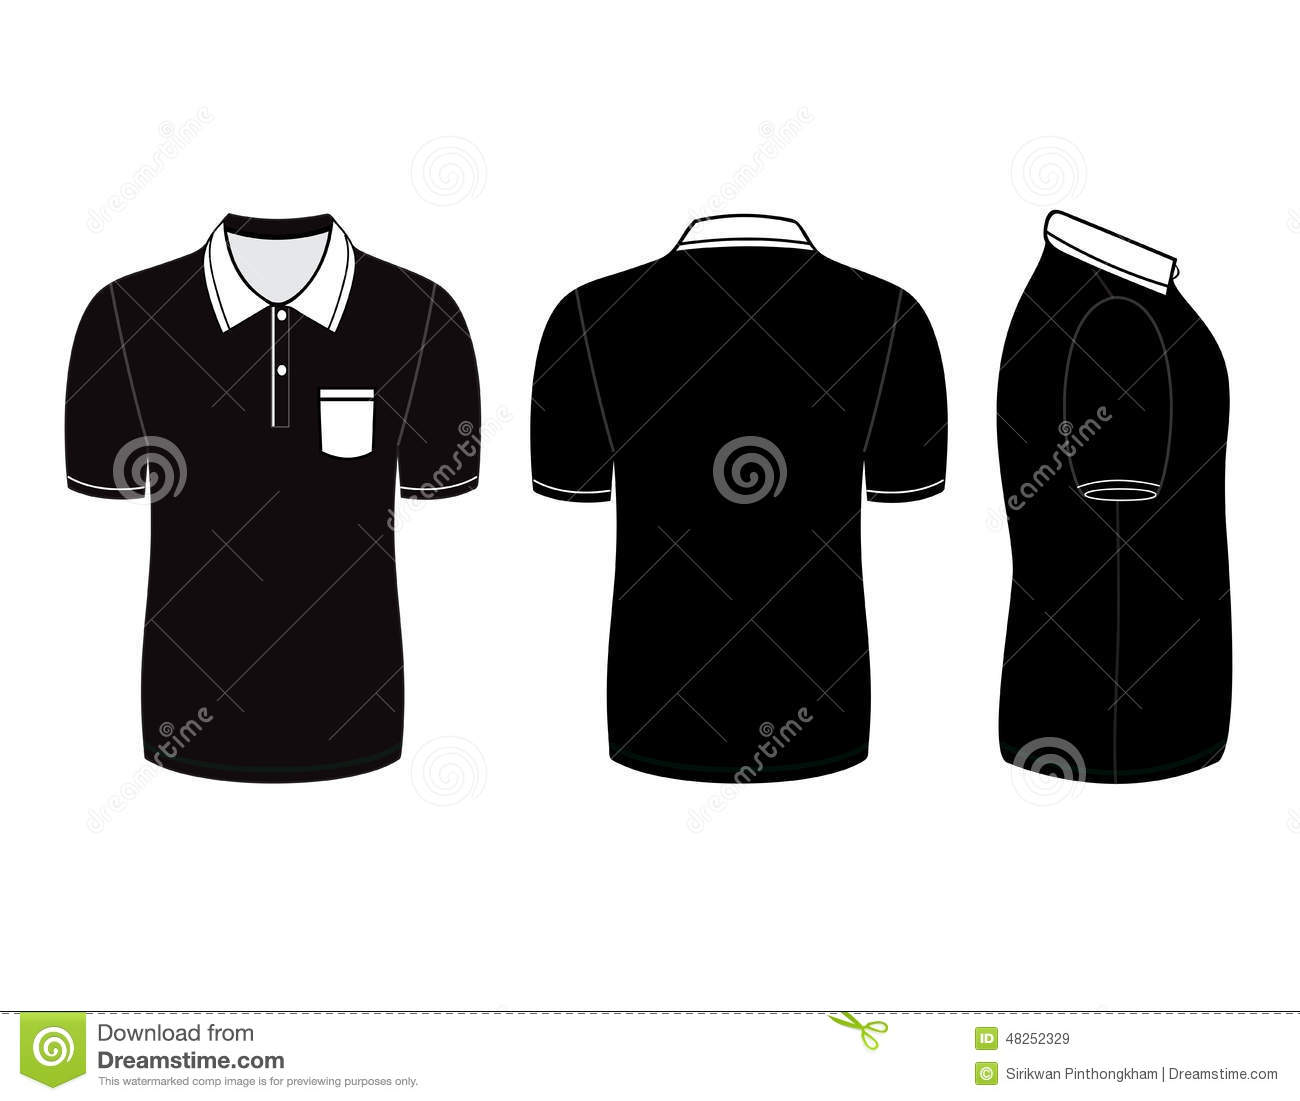 Polo Shirt Design Templates Front Back And Side Views Stock - Design a shirt template